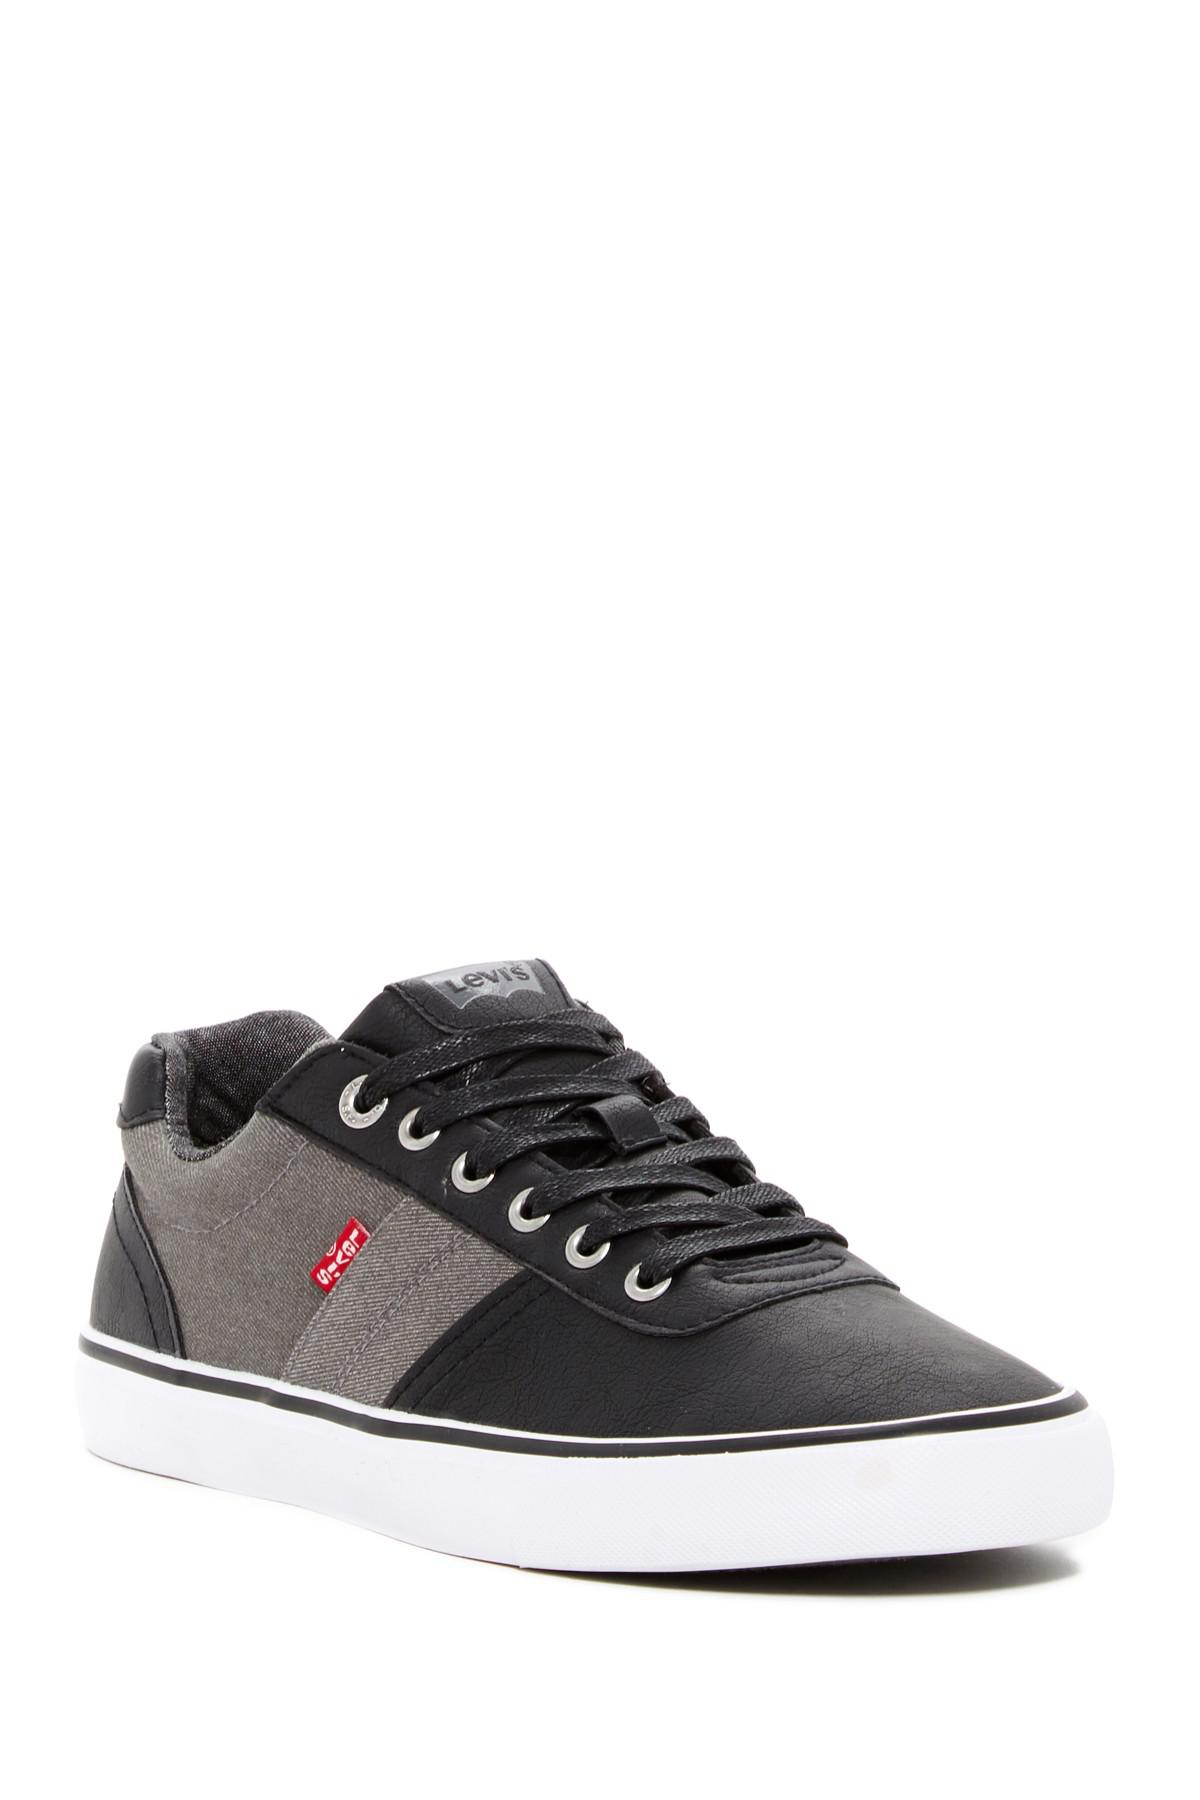 a6cddb3c070a2 Lyst - Levi s Miles Cacti Denim Sneaker in Black for Men